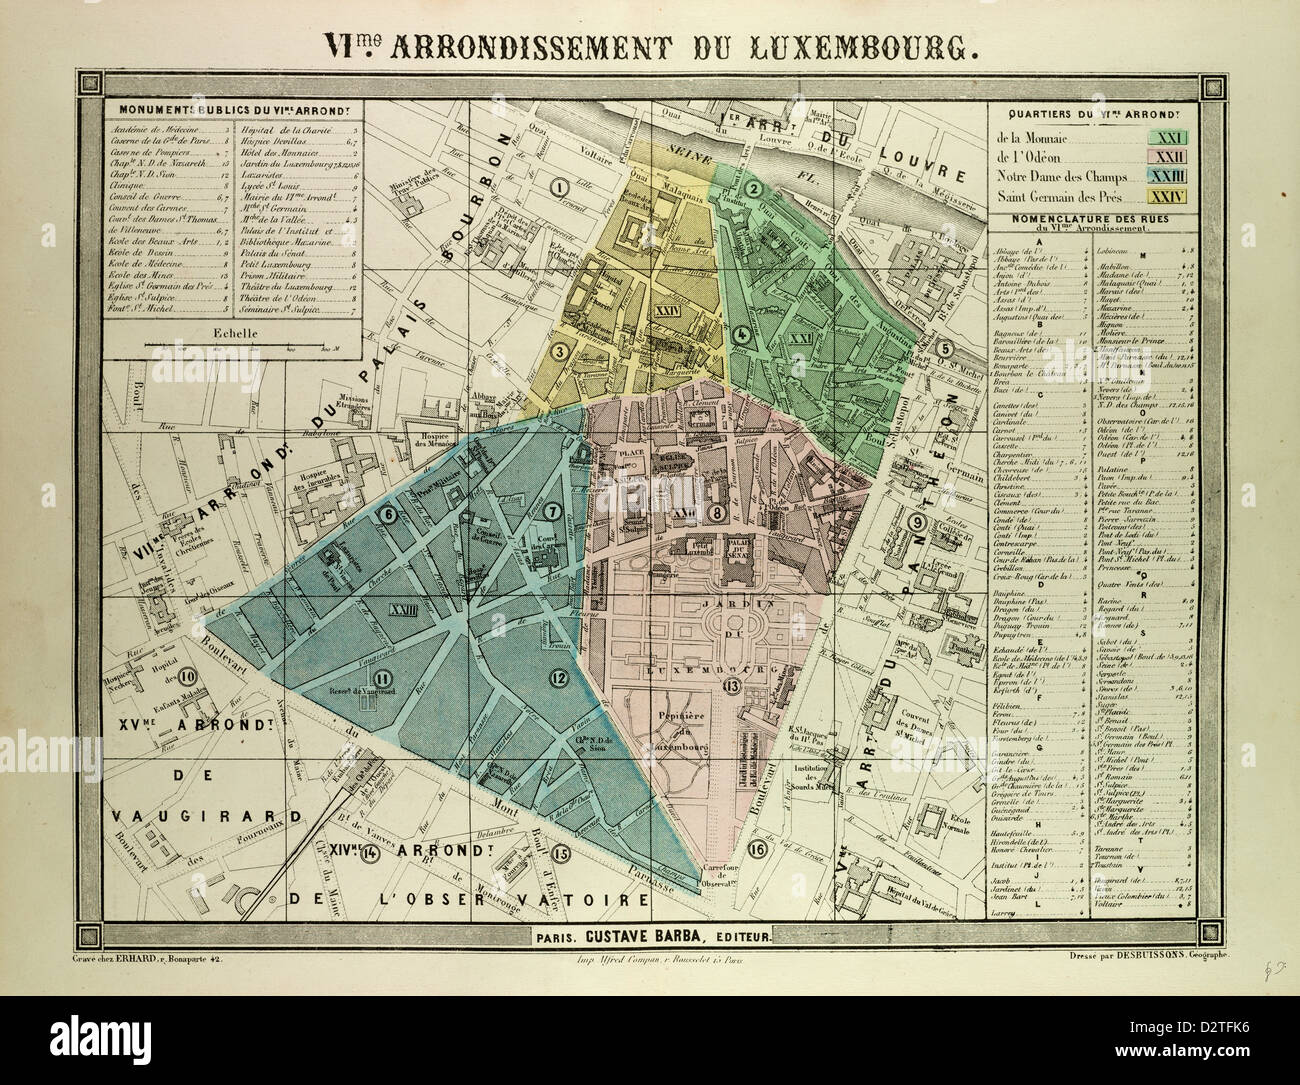 Map Of Paris France 6th Arrondissement.Map Of The 6th Arrondissement Du Luxembourg Paris France Stock Photo